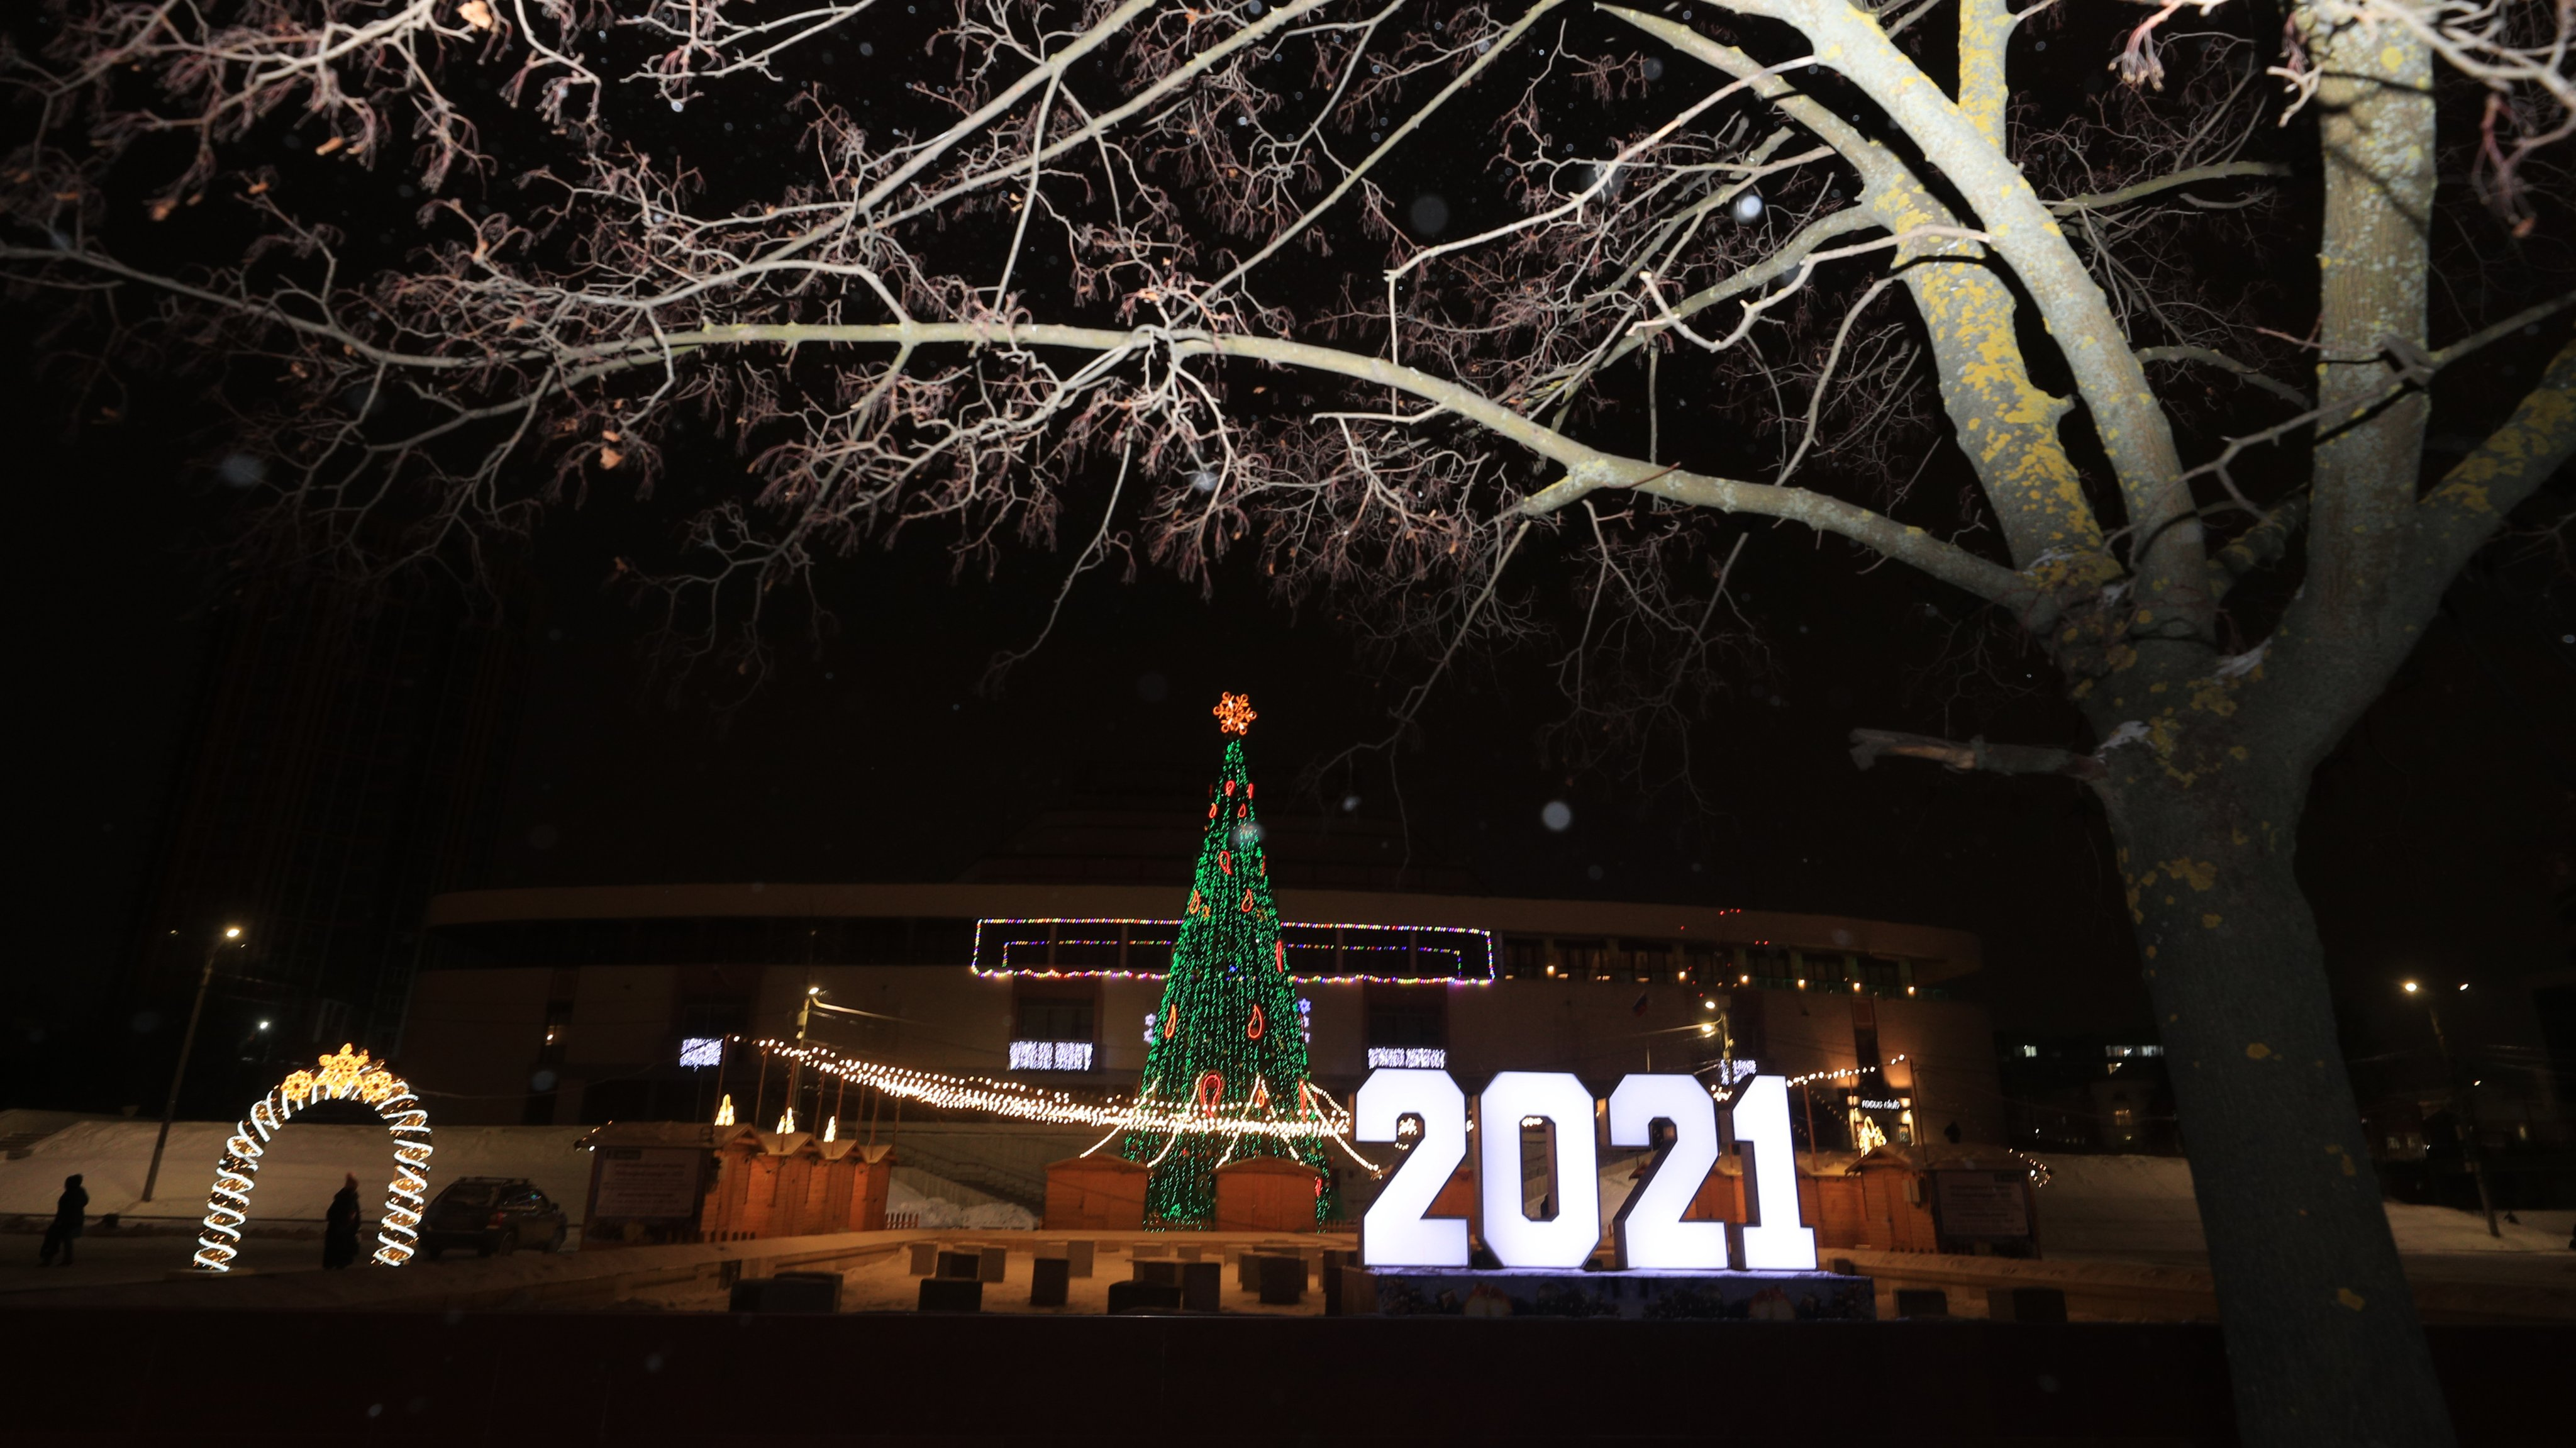 Russian city of Ivanovo decorated for winter holidays